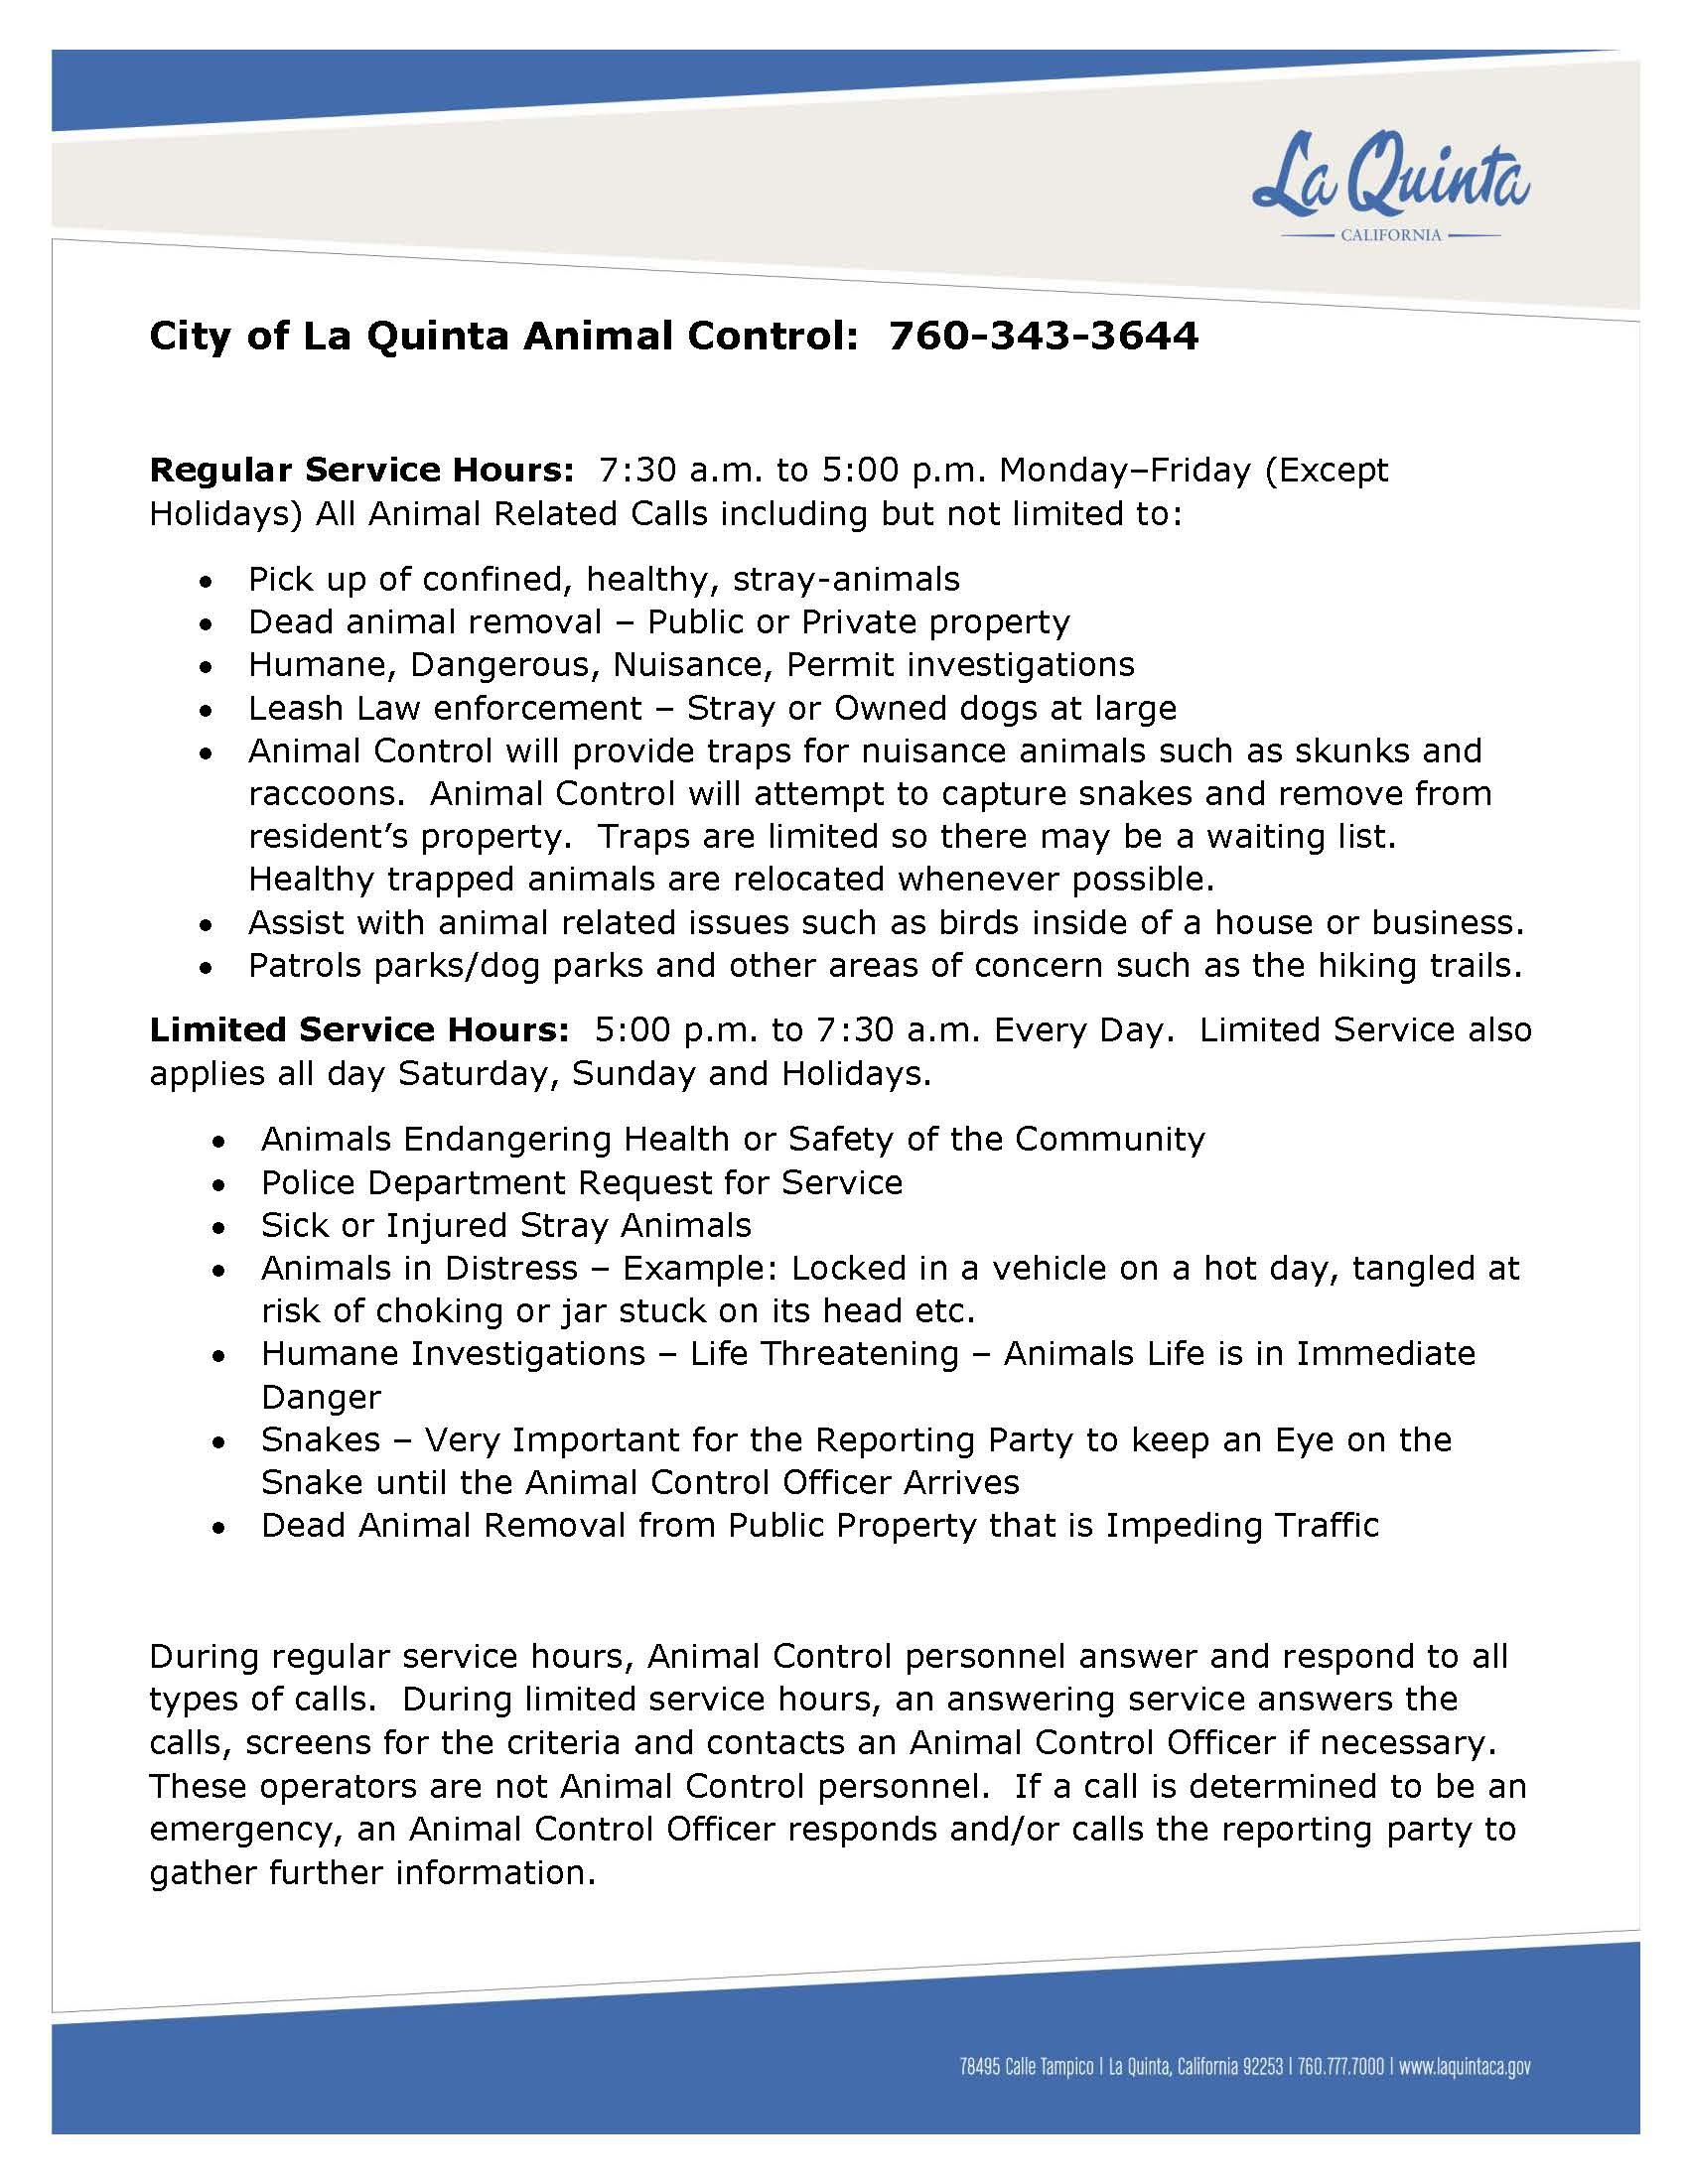 ANIMAL CONTROL INFORMATION